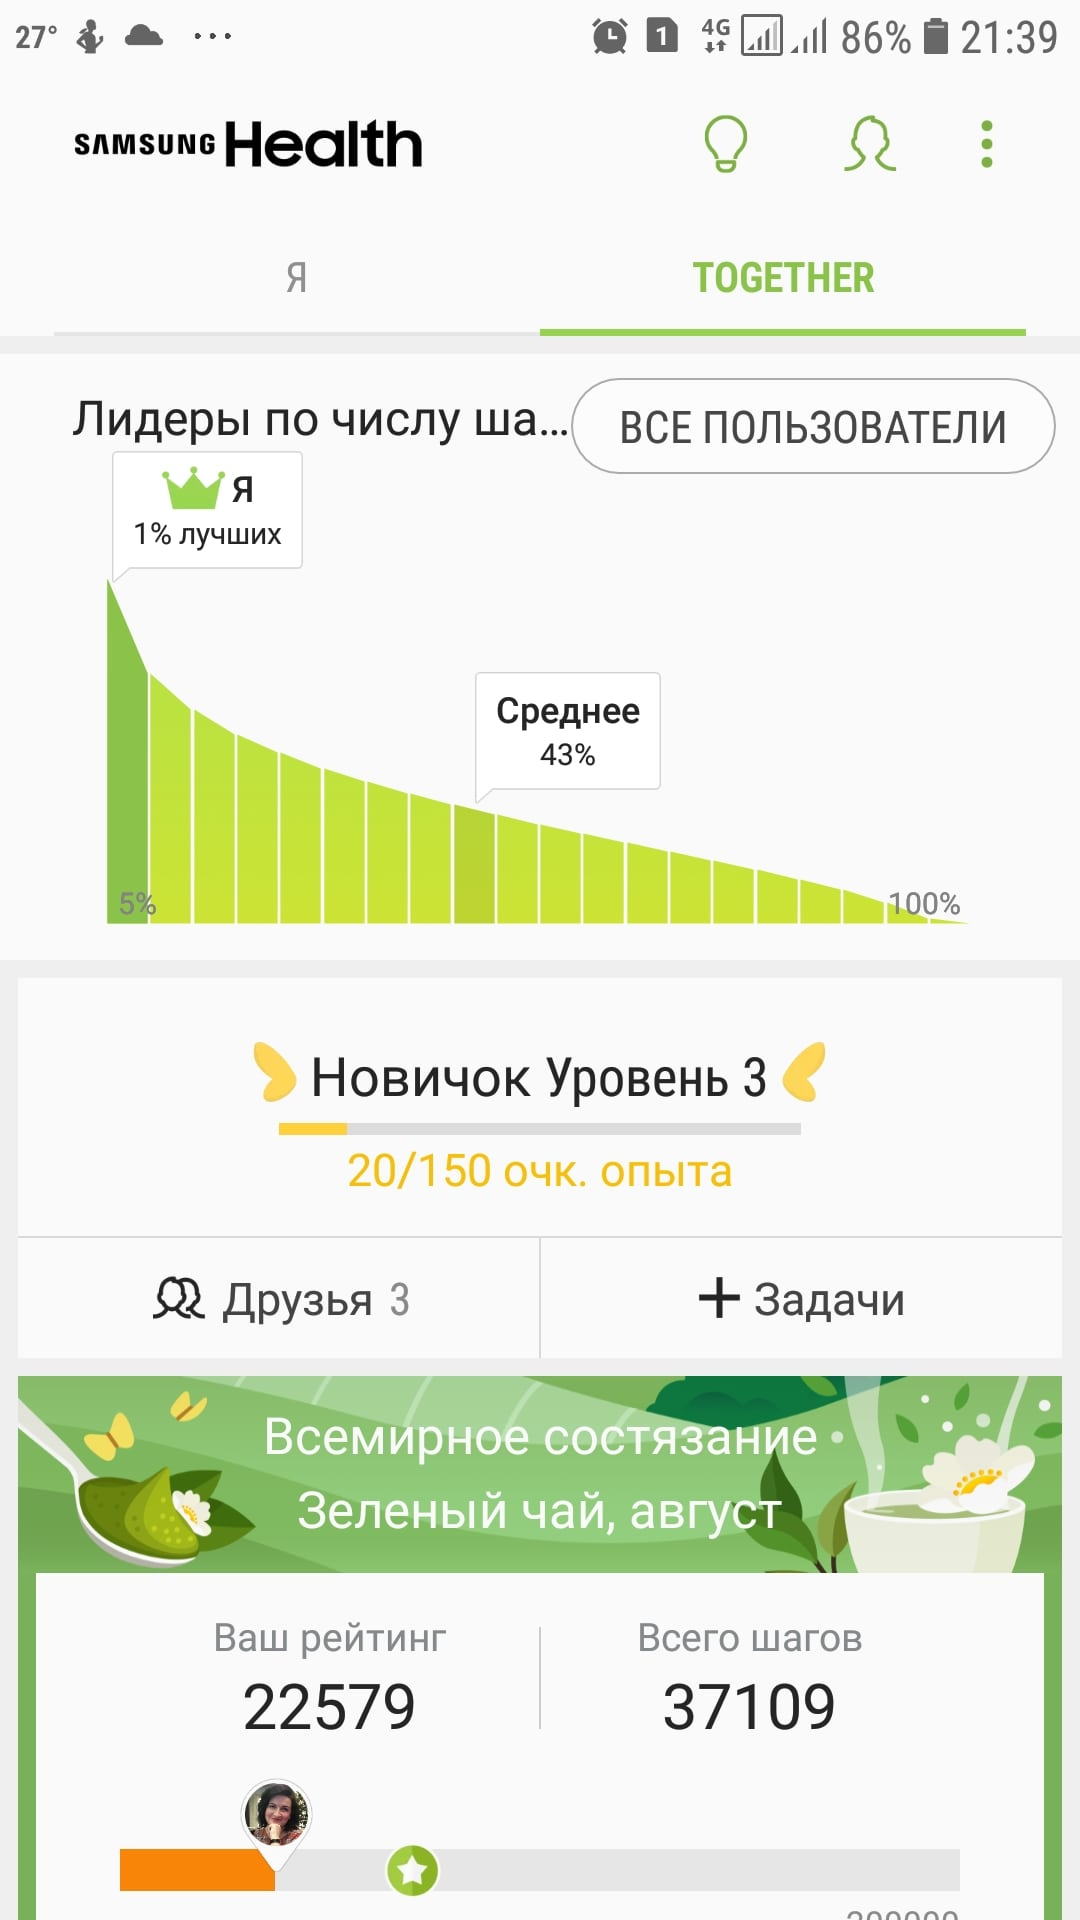 Screenshot_20180802-213905_Samsung Health.jpg